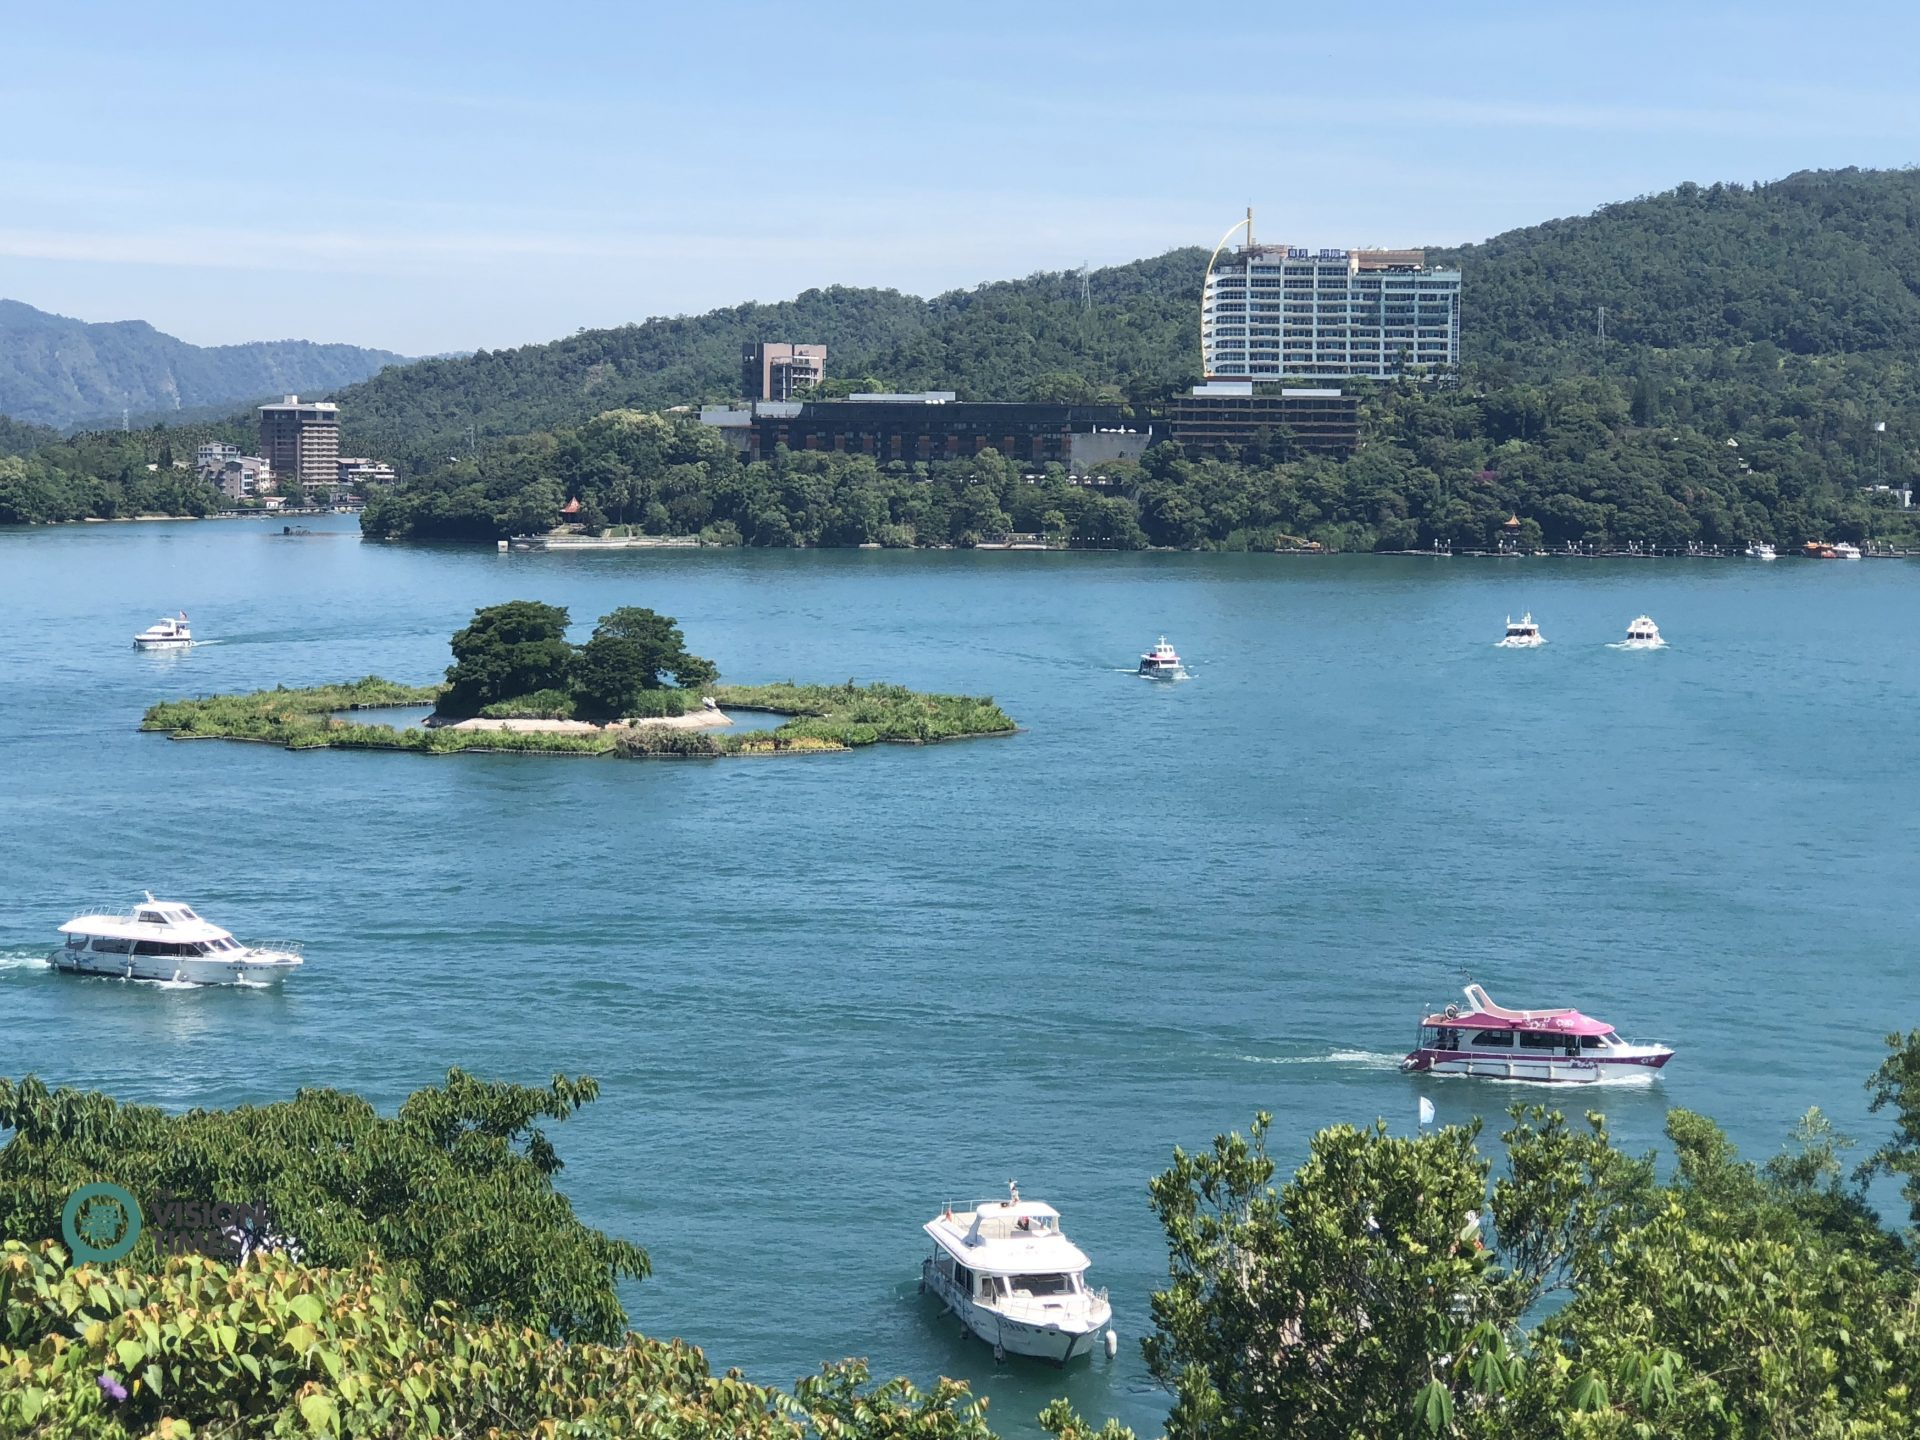 Sun Moon Lake is one of the most famous tourist attractions in Taiwan. (Image: Billy Shyu / Vision Times)